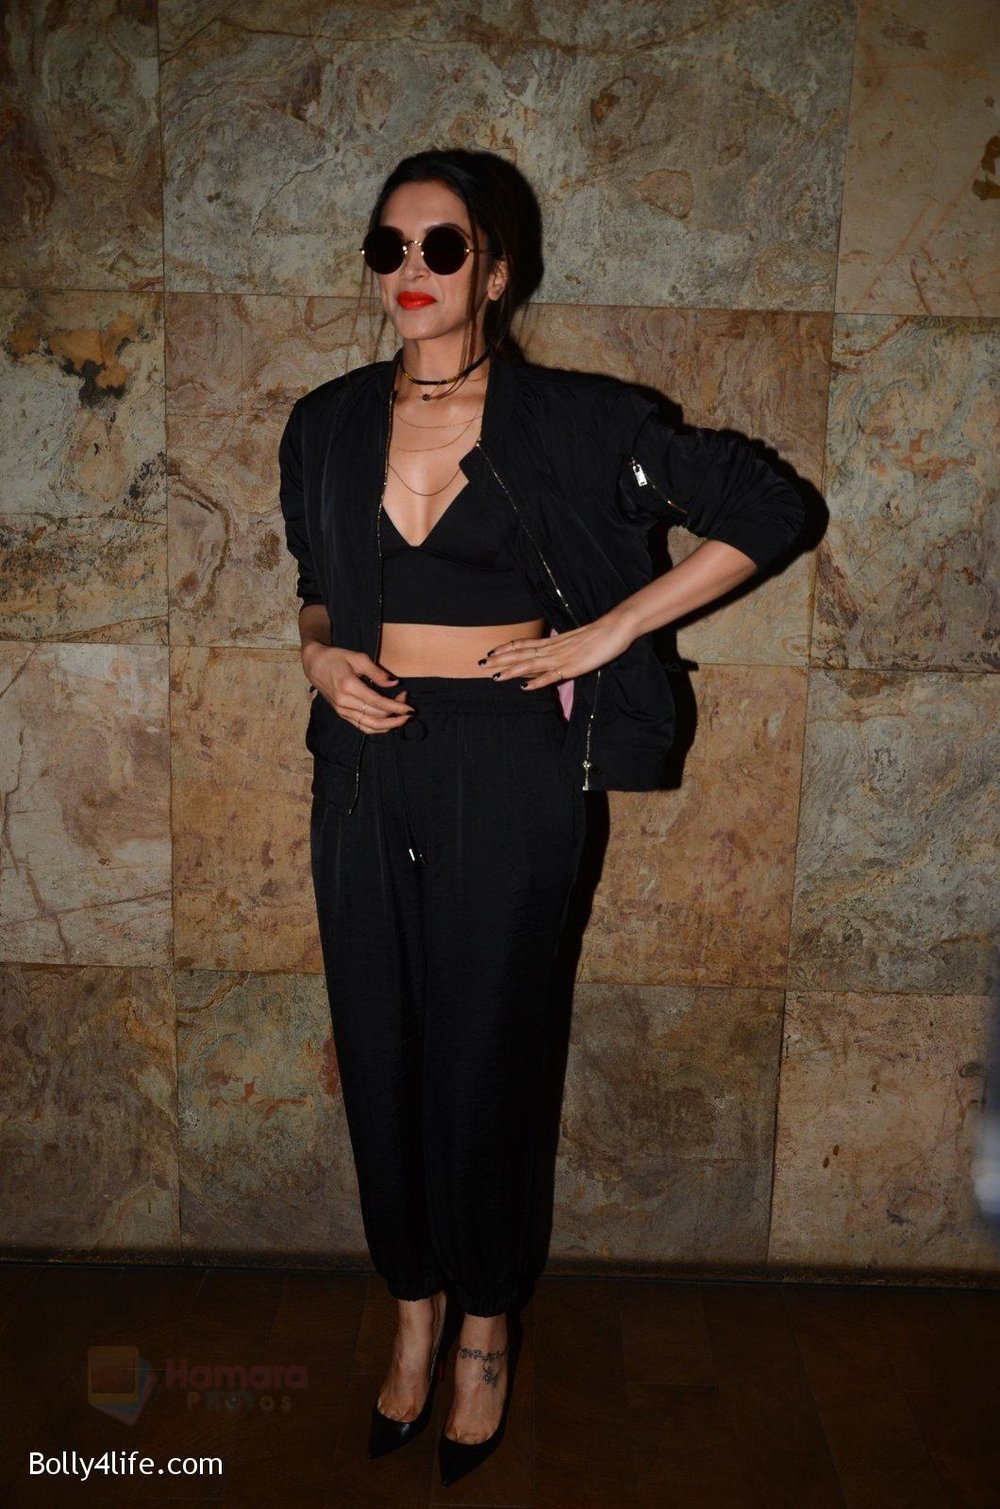 Deepika-Padukone-snapped-at-the-screening-in-lightbox-on-14th-Oct-201637.jpg